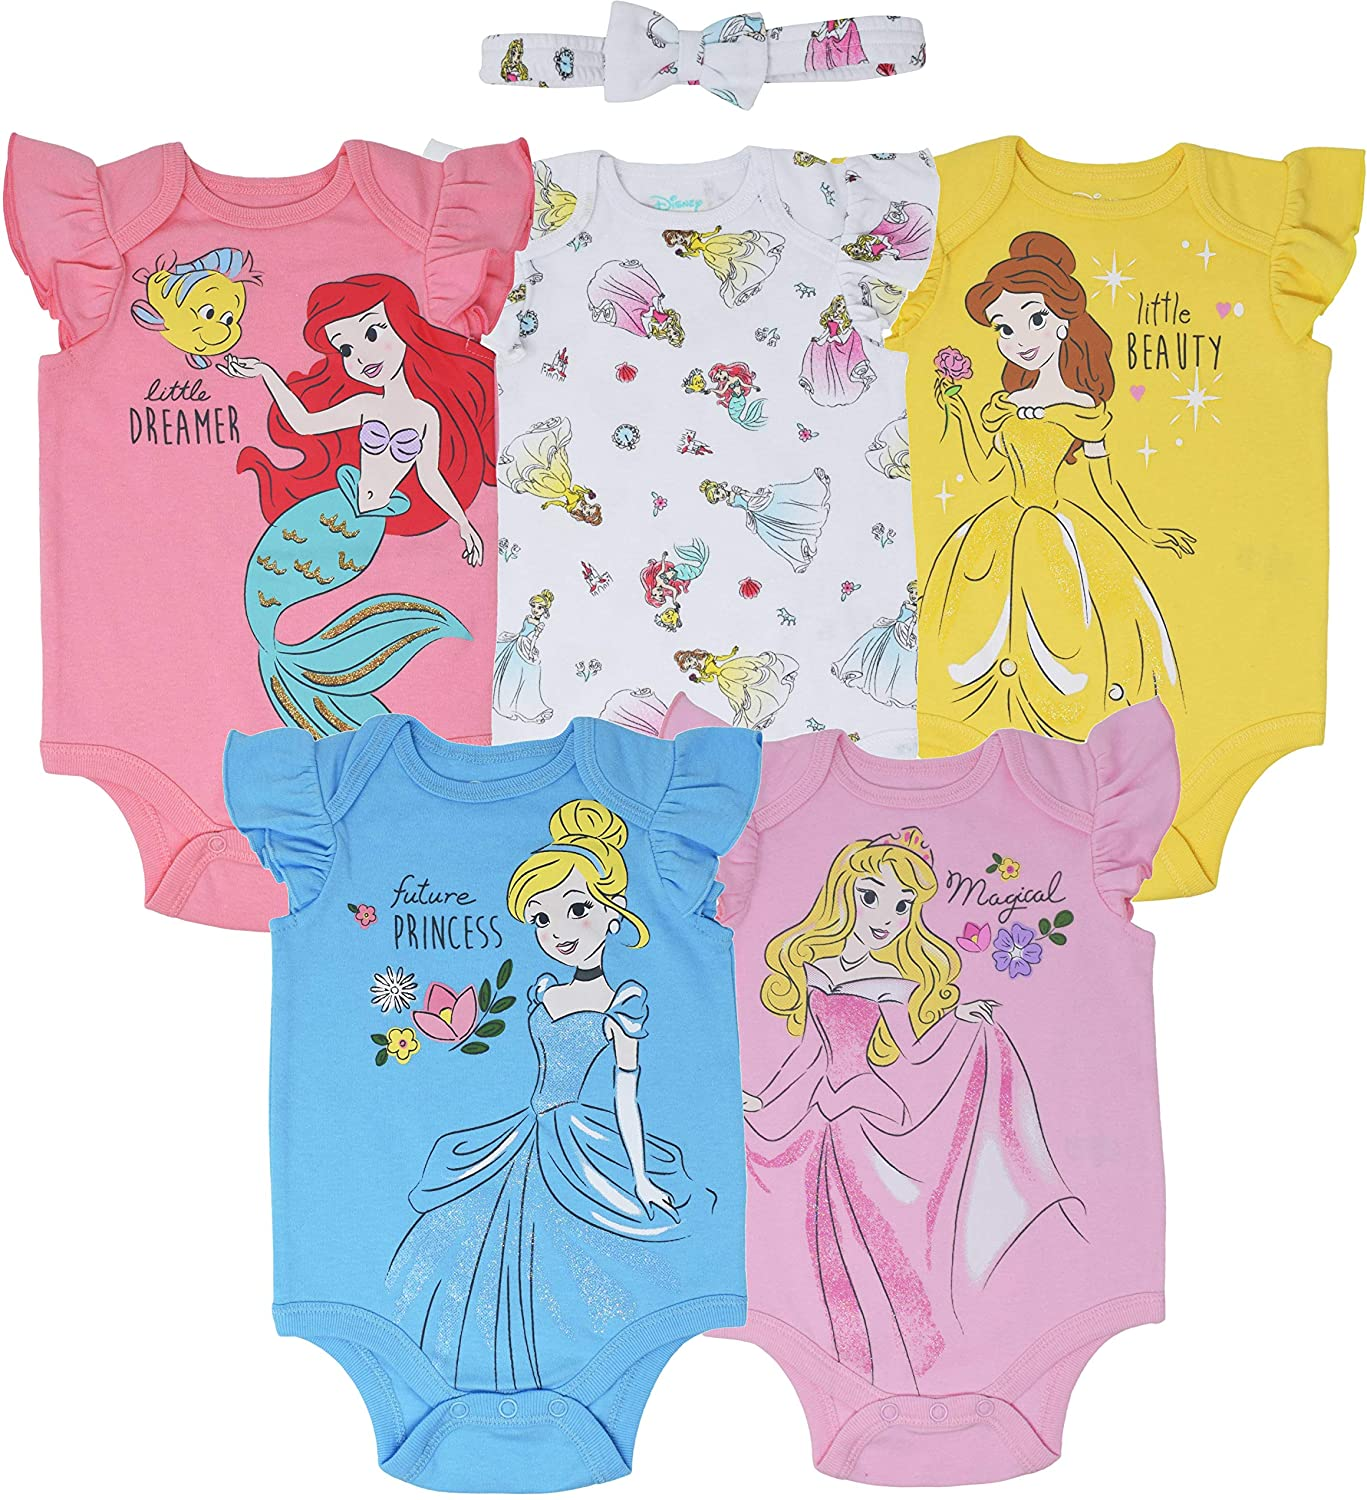 Disney Princess Baby Girls' 5 Pack Bodysuits and Bow